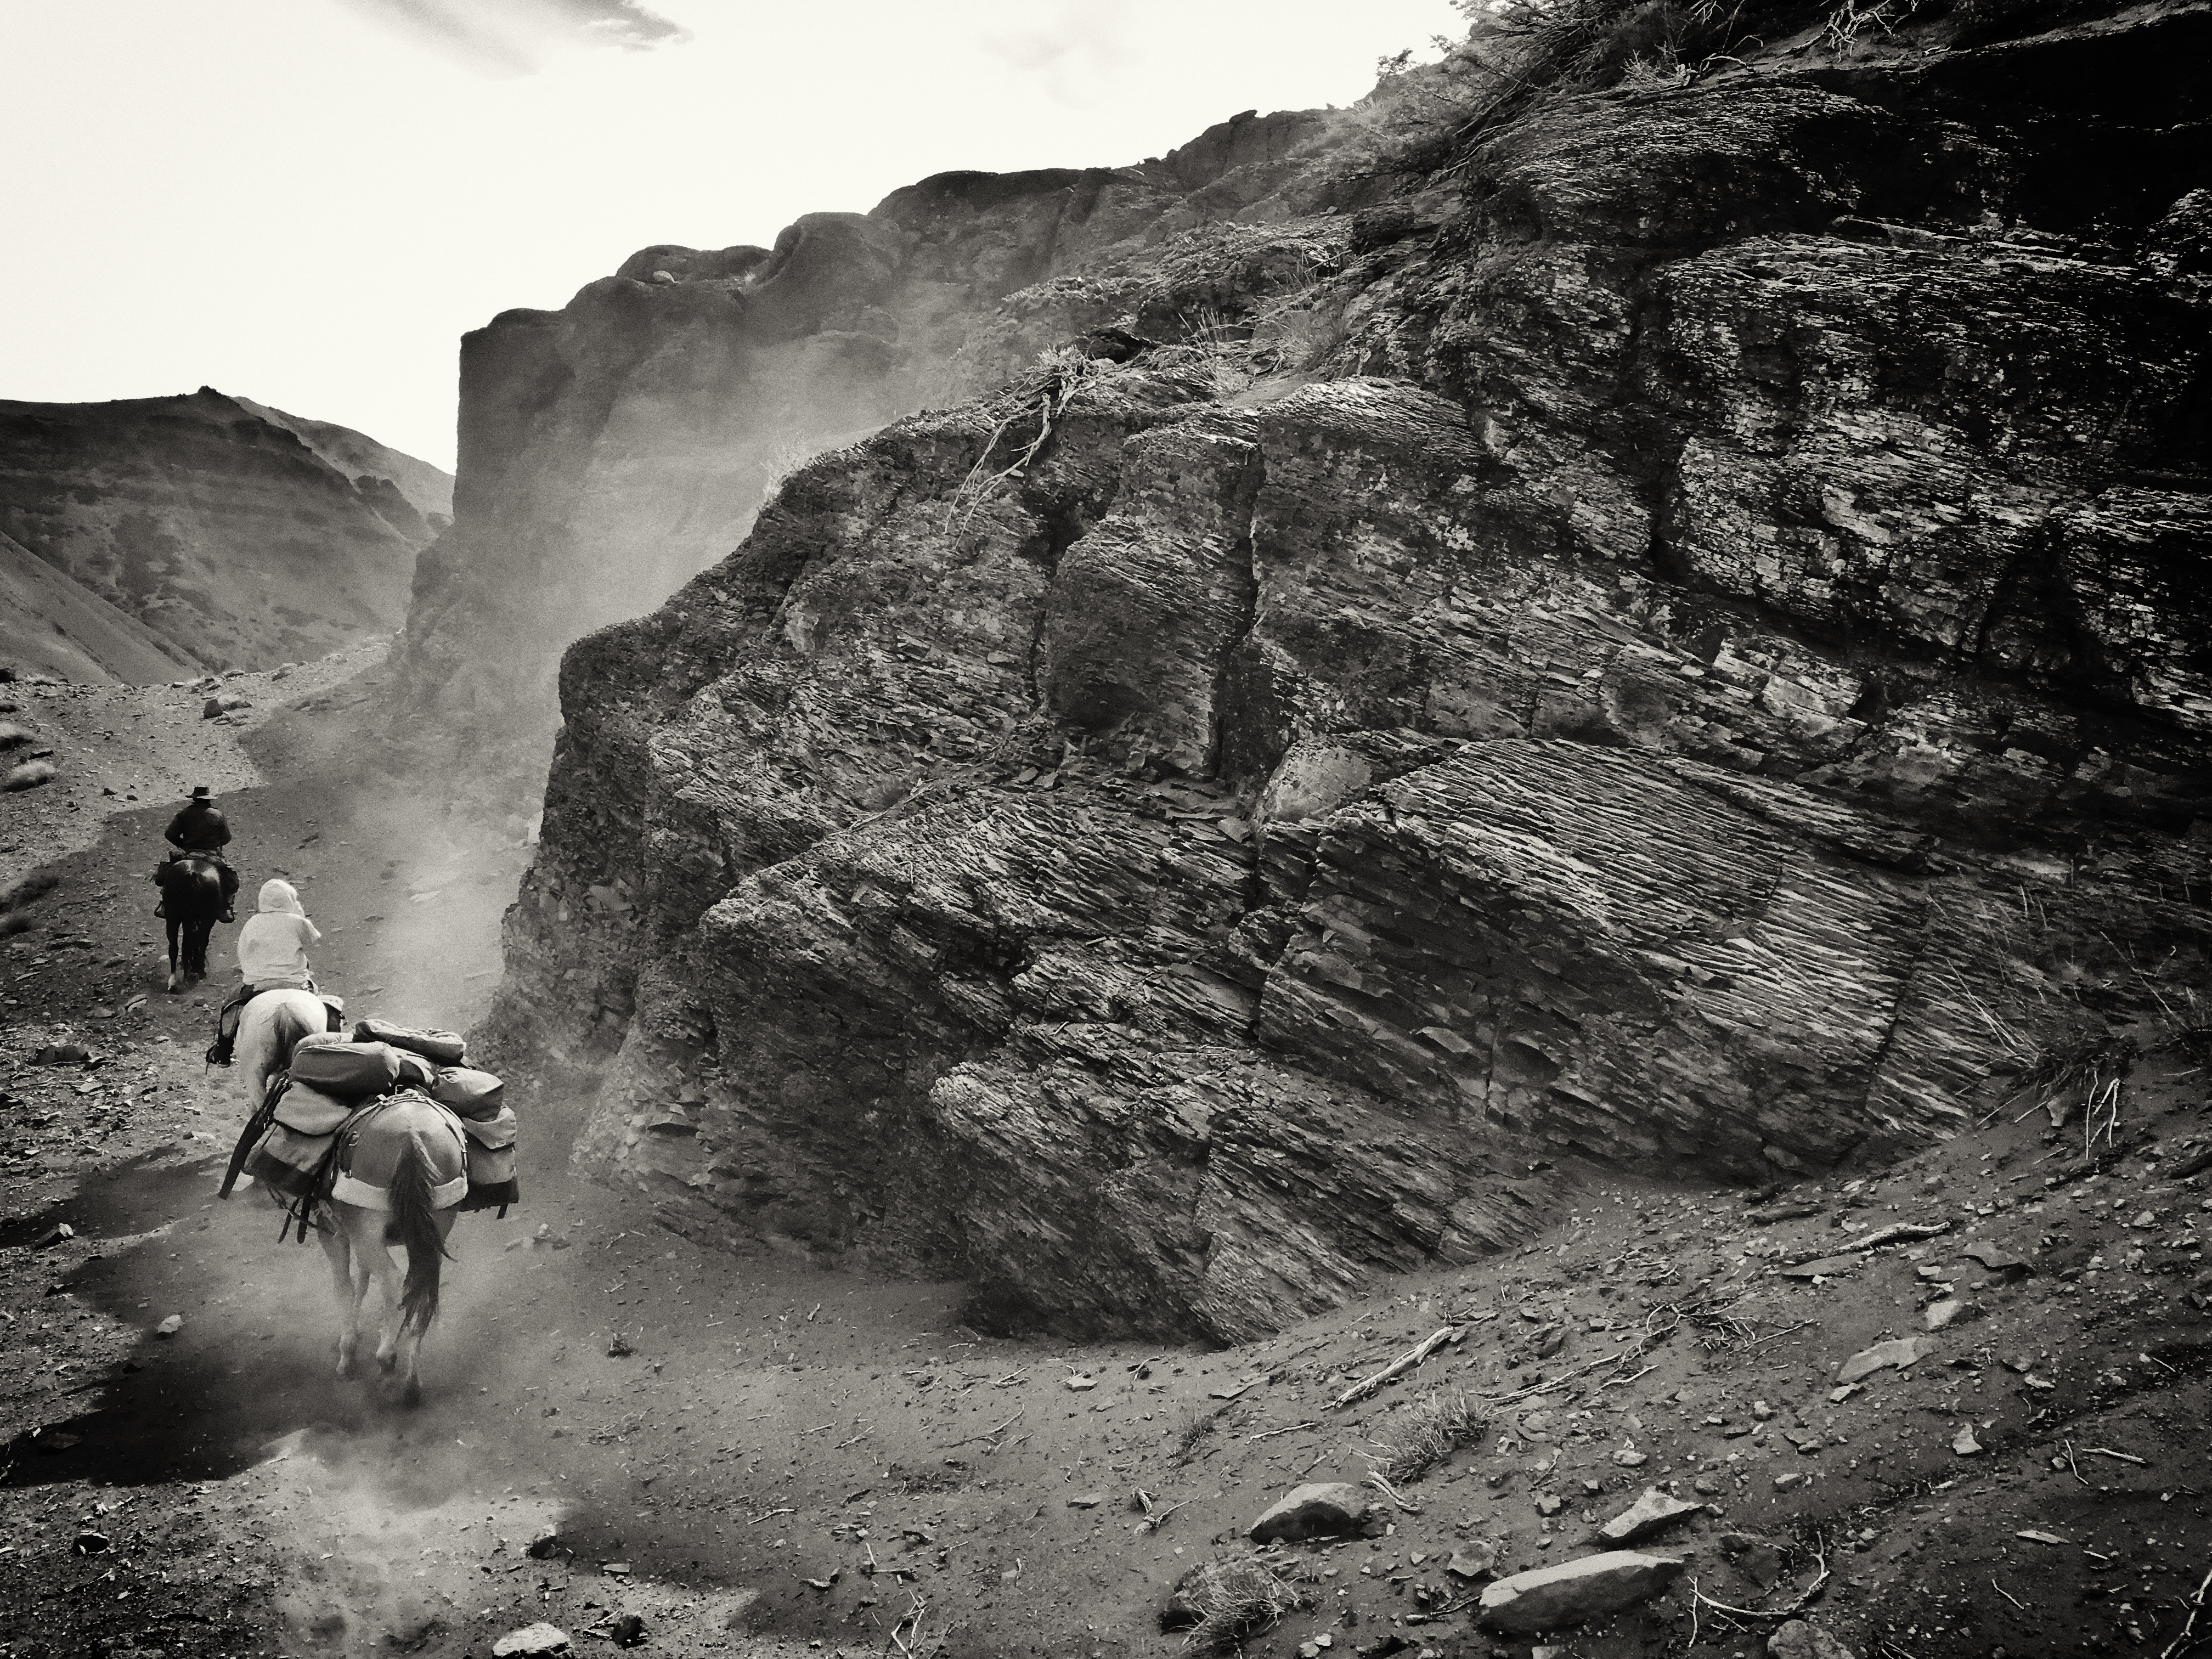 Black and white photo of riders and pack mule heading into the Patagonian mountains